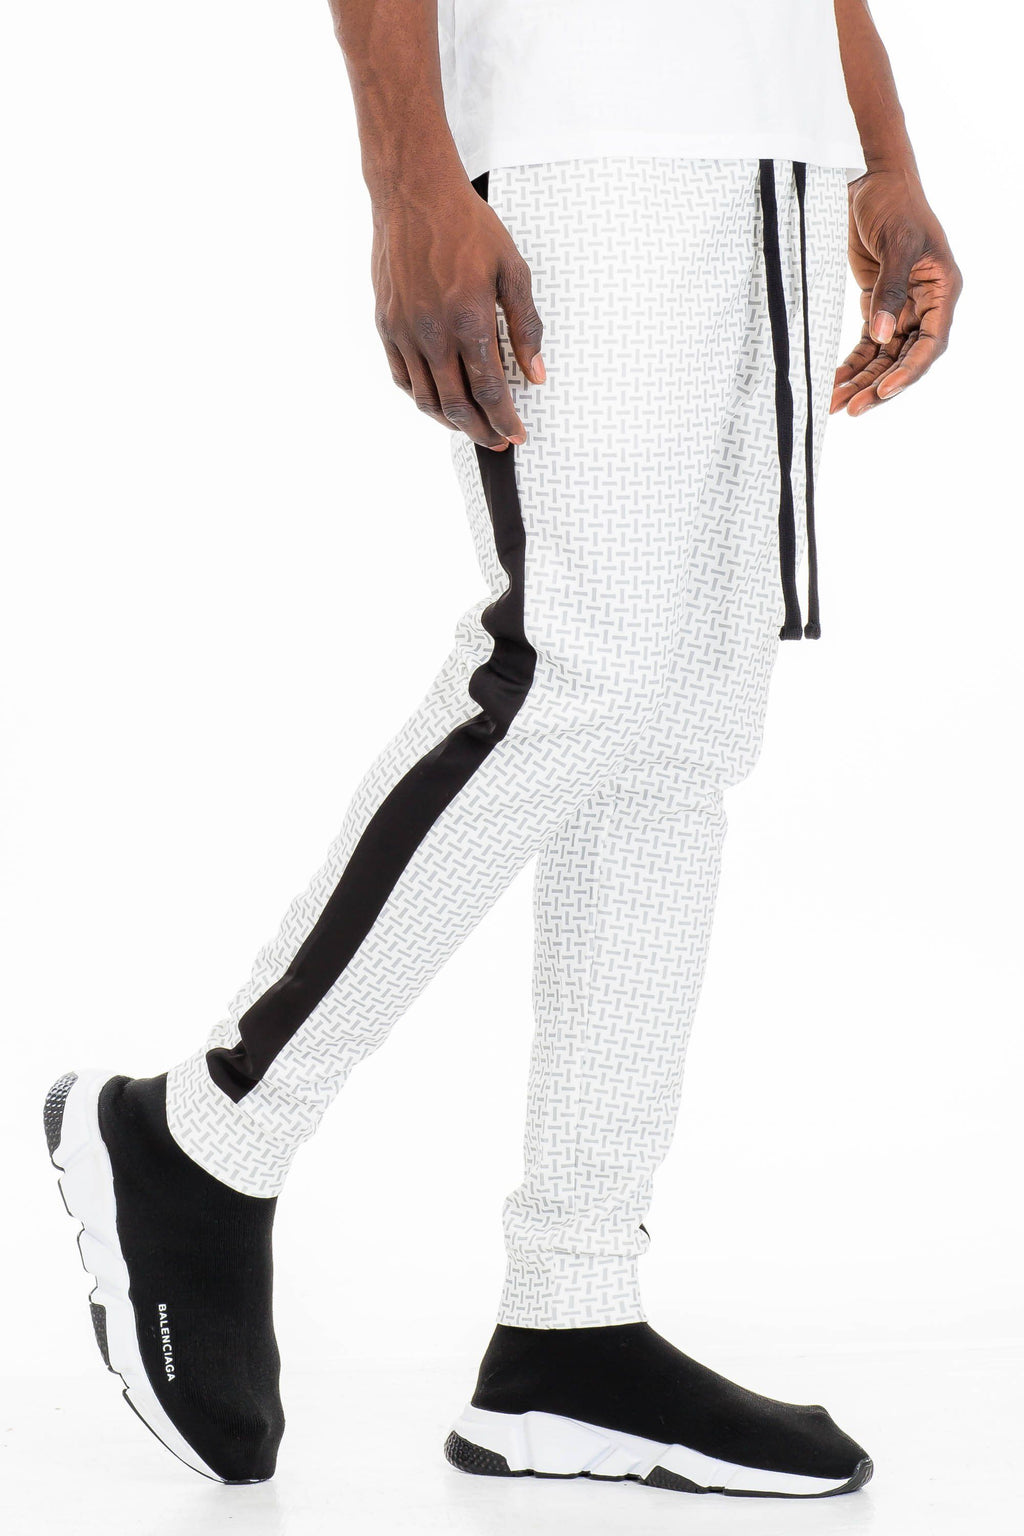 PATTERNED TRACK PANTS- WHITE | gymgiantgear